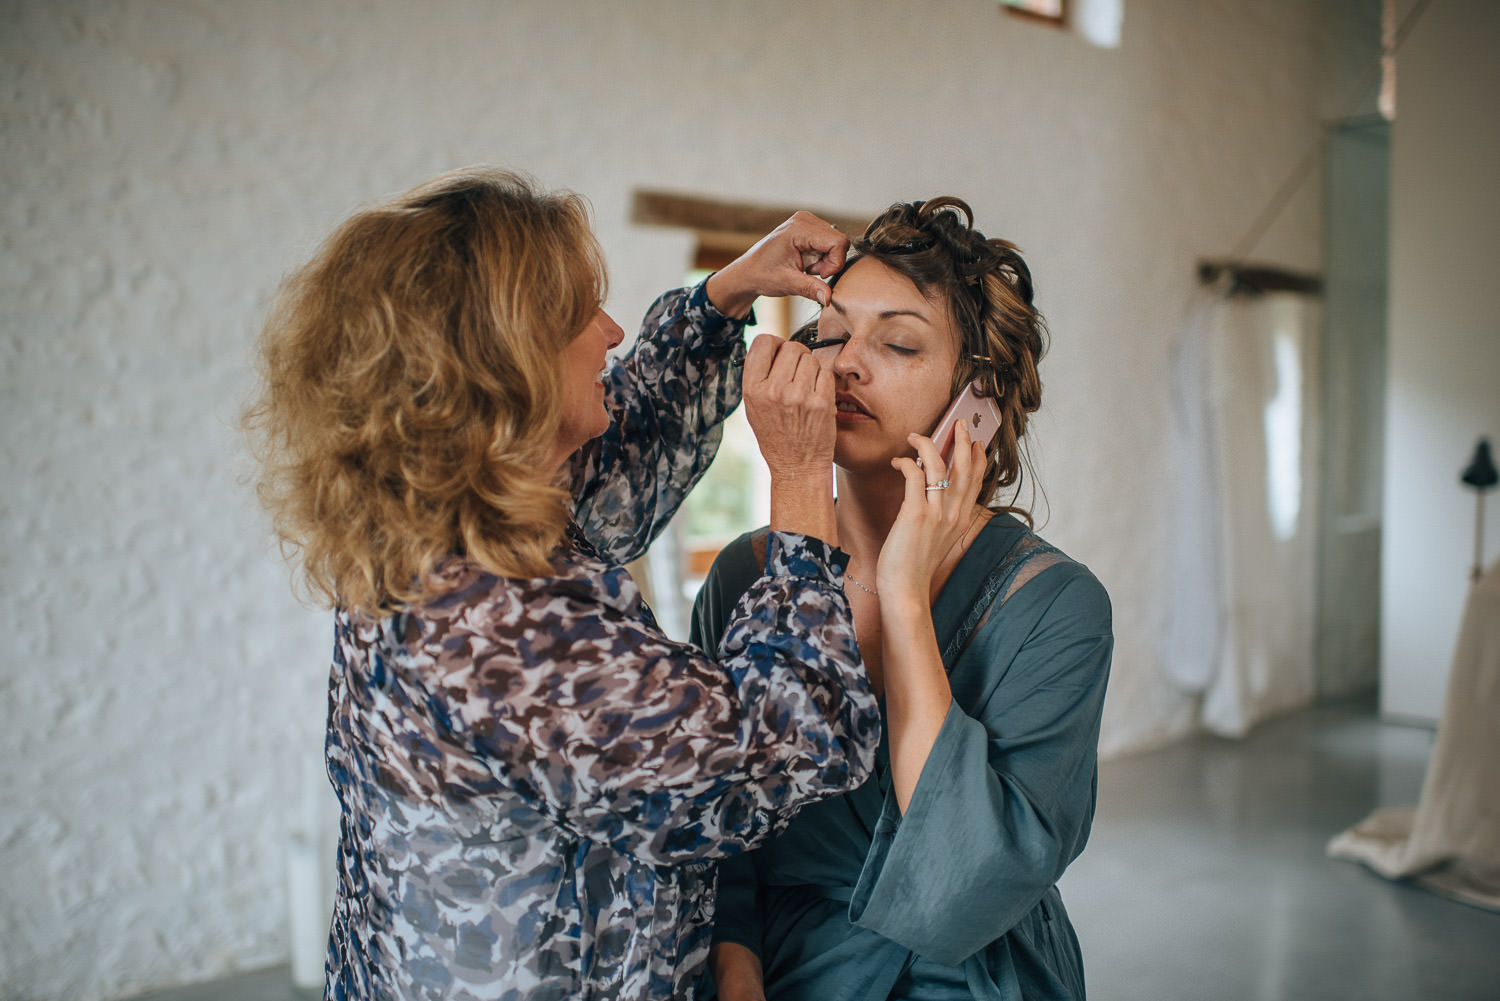 Bridal makeup at Chateau de la Bourlie Wedding by creative and alternative destination wedding photographer the shannons photography